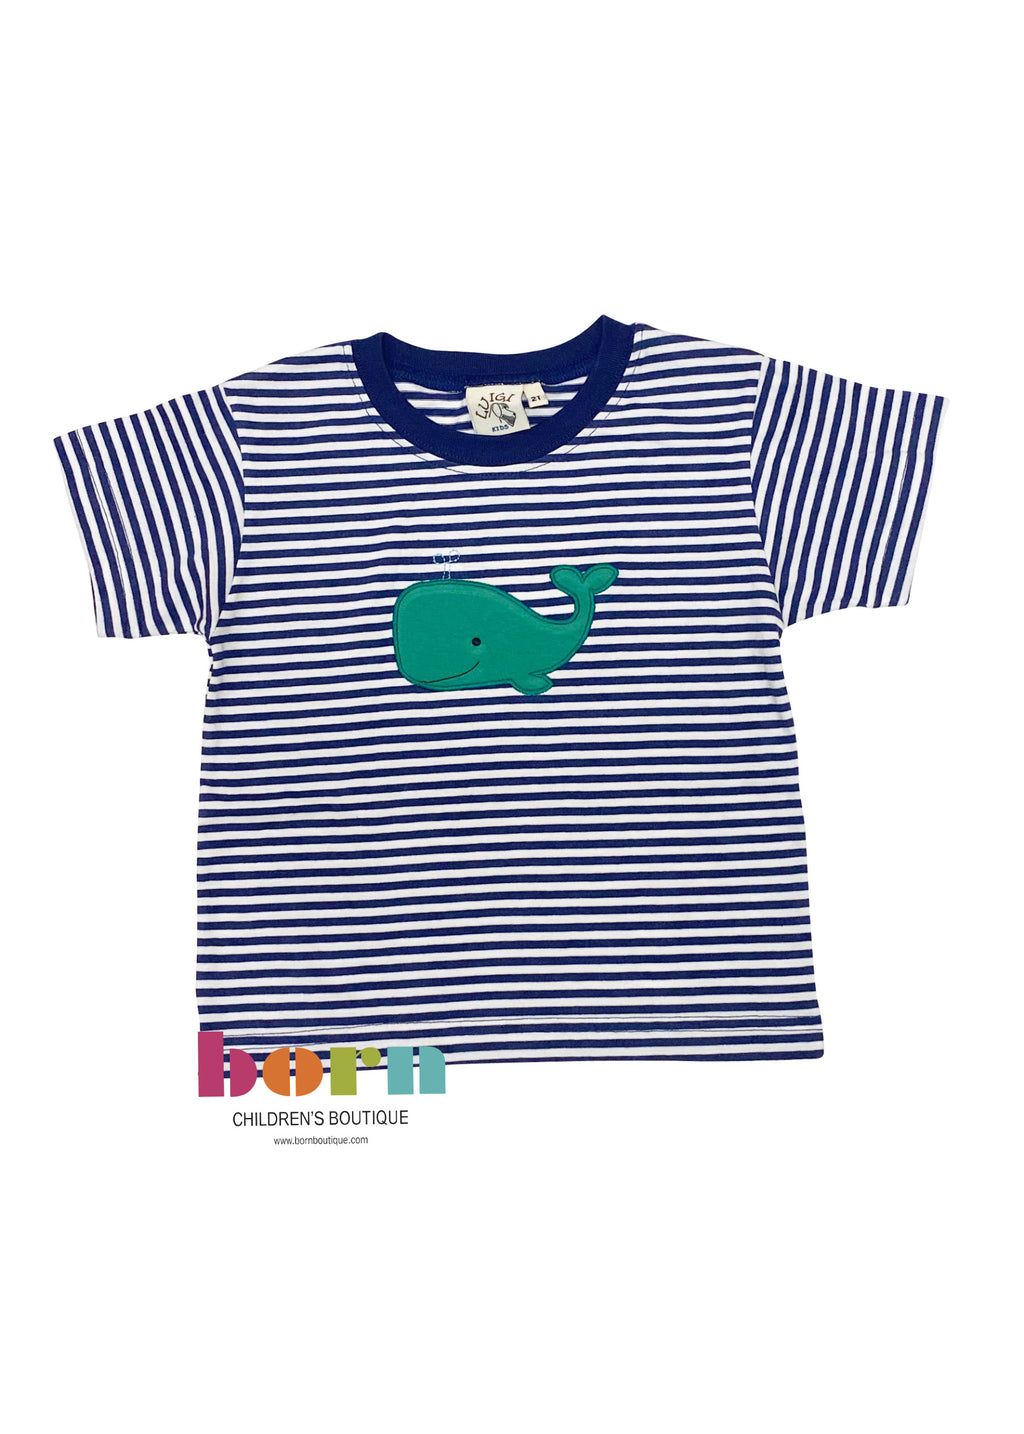 Dark Royal Stripe Whale Applique Short Sleeve Shirt - Born Childrens Boutique